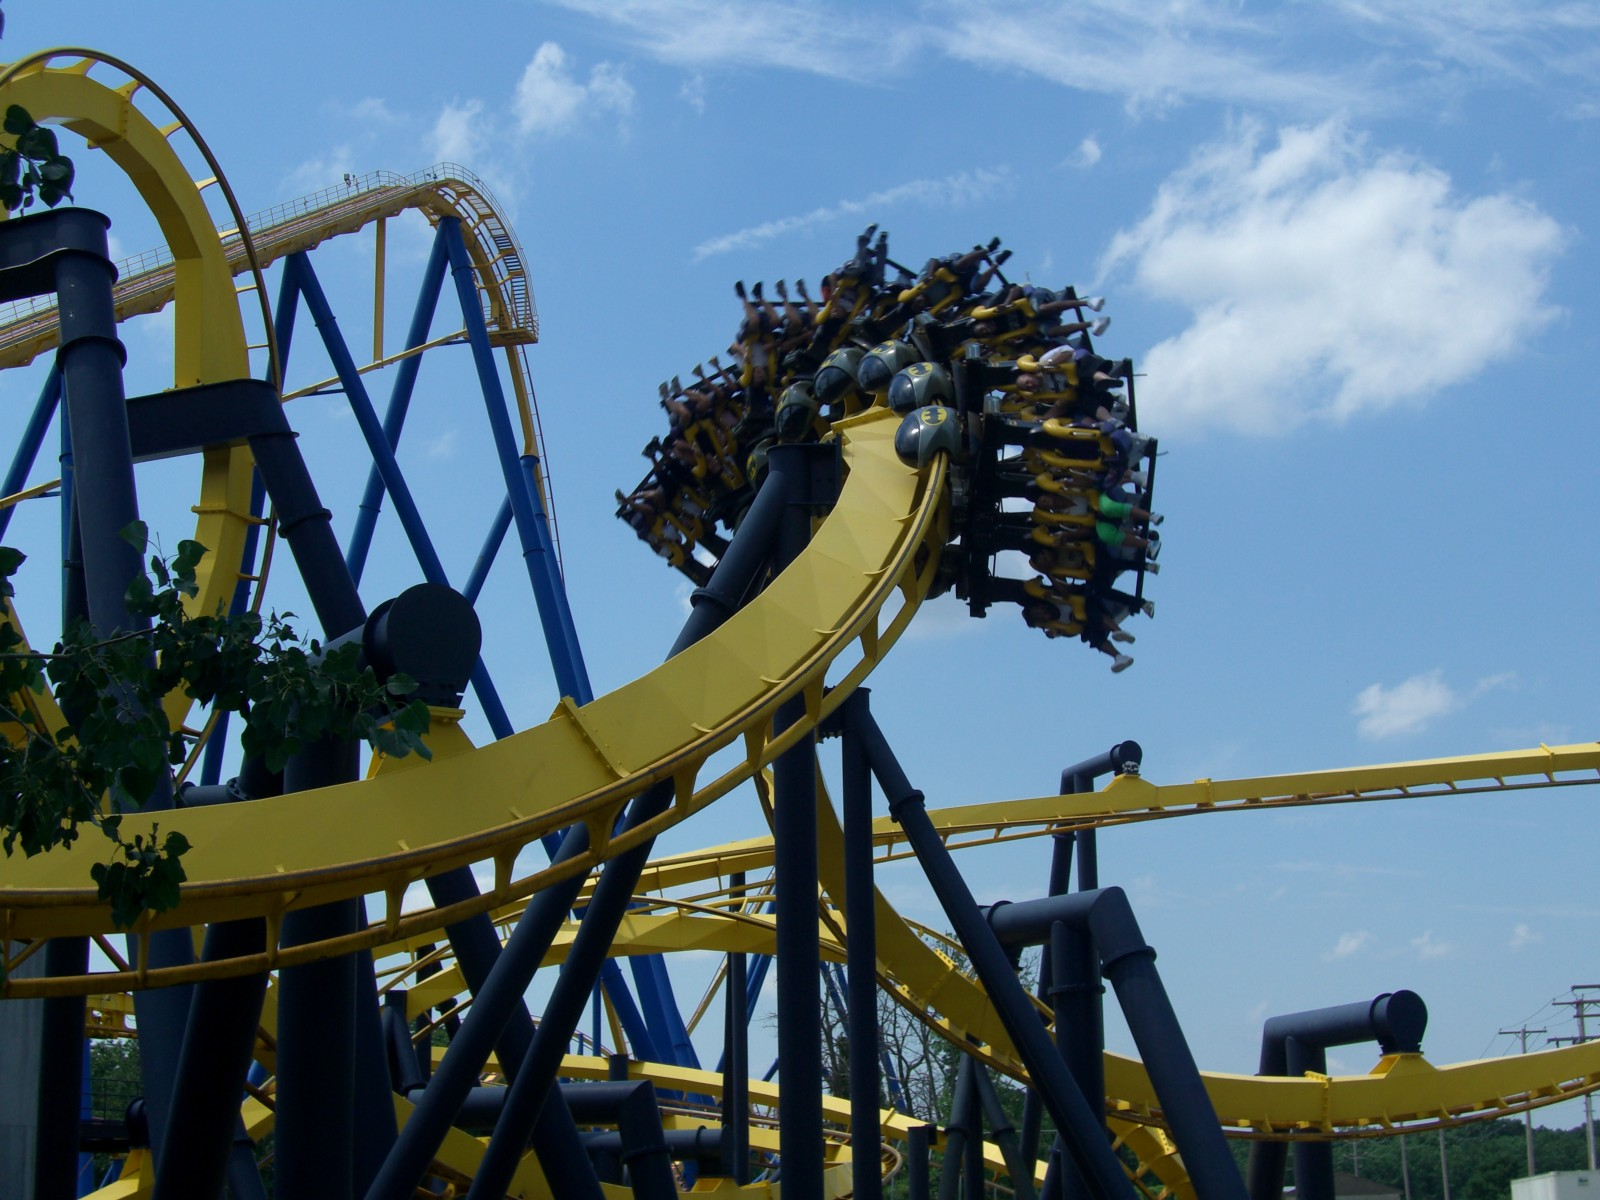 Science Rides And Kevin Why Six Flags Great Adventure Is A Great Adventure